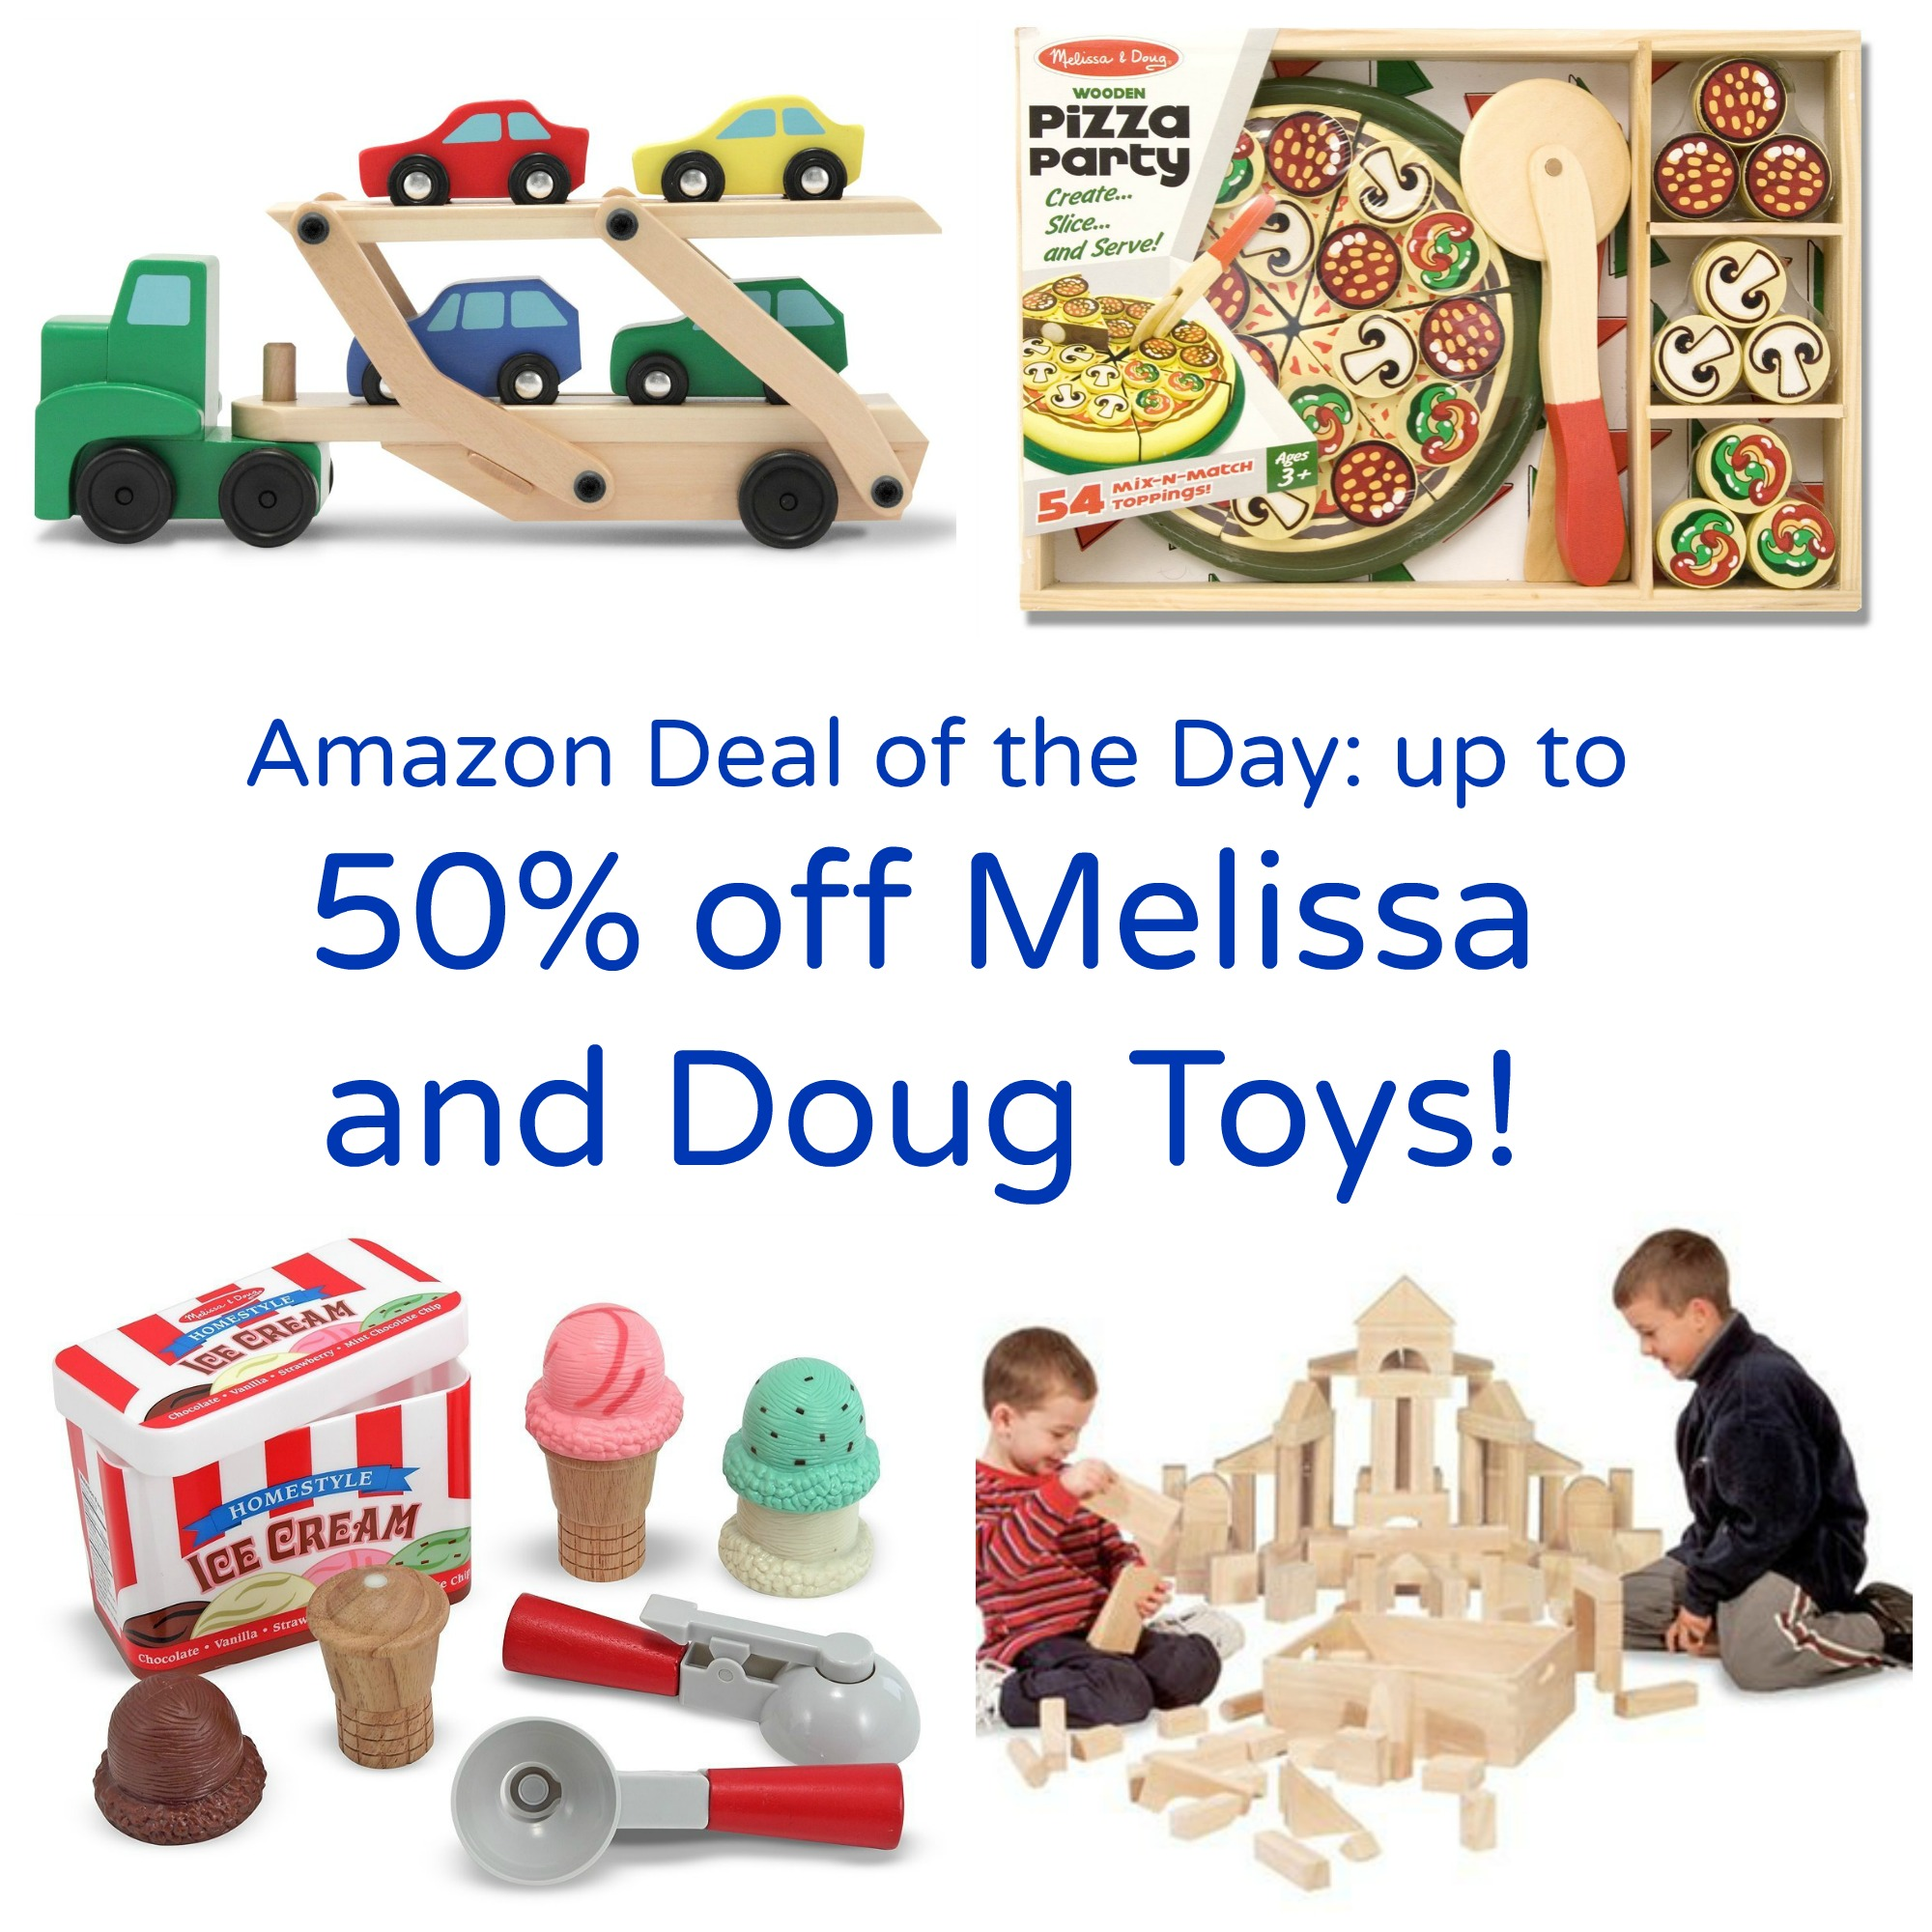 Amazon Deal of the Day Up to 50 off Melissa and Doug